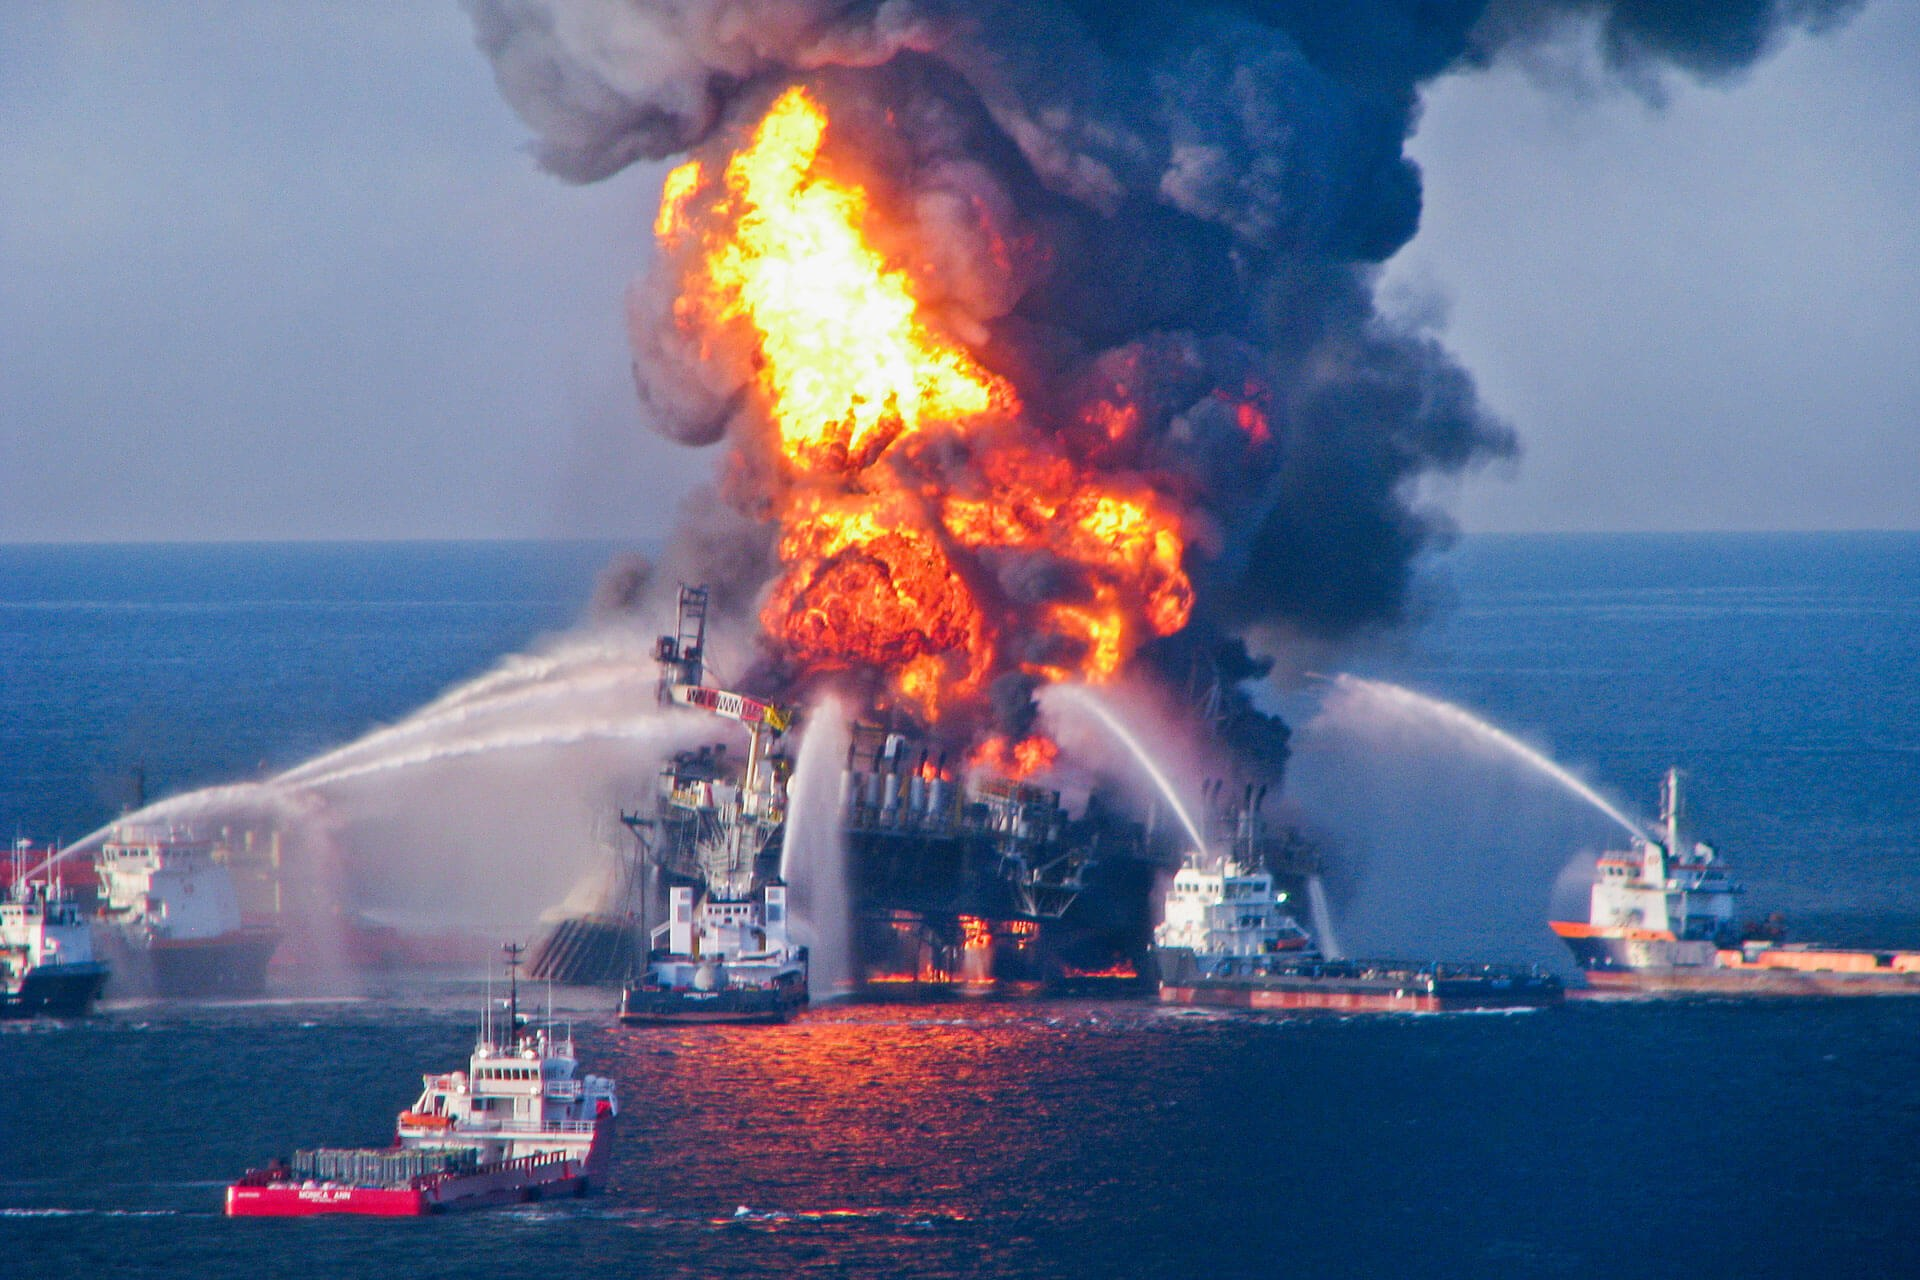 Deepwater horizon oil rig blast and fire o1080 3